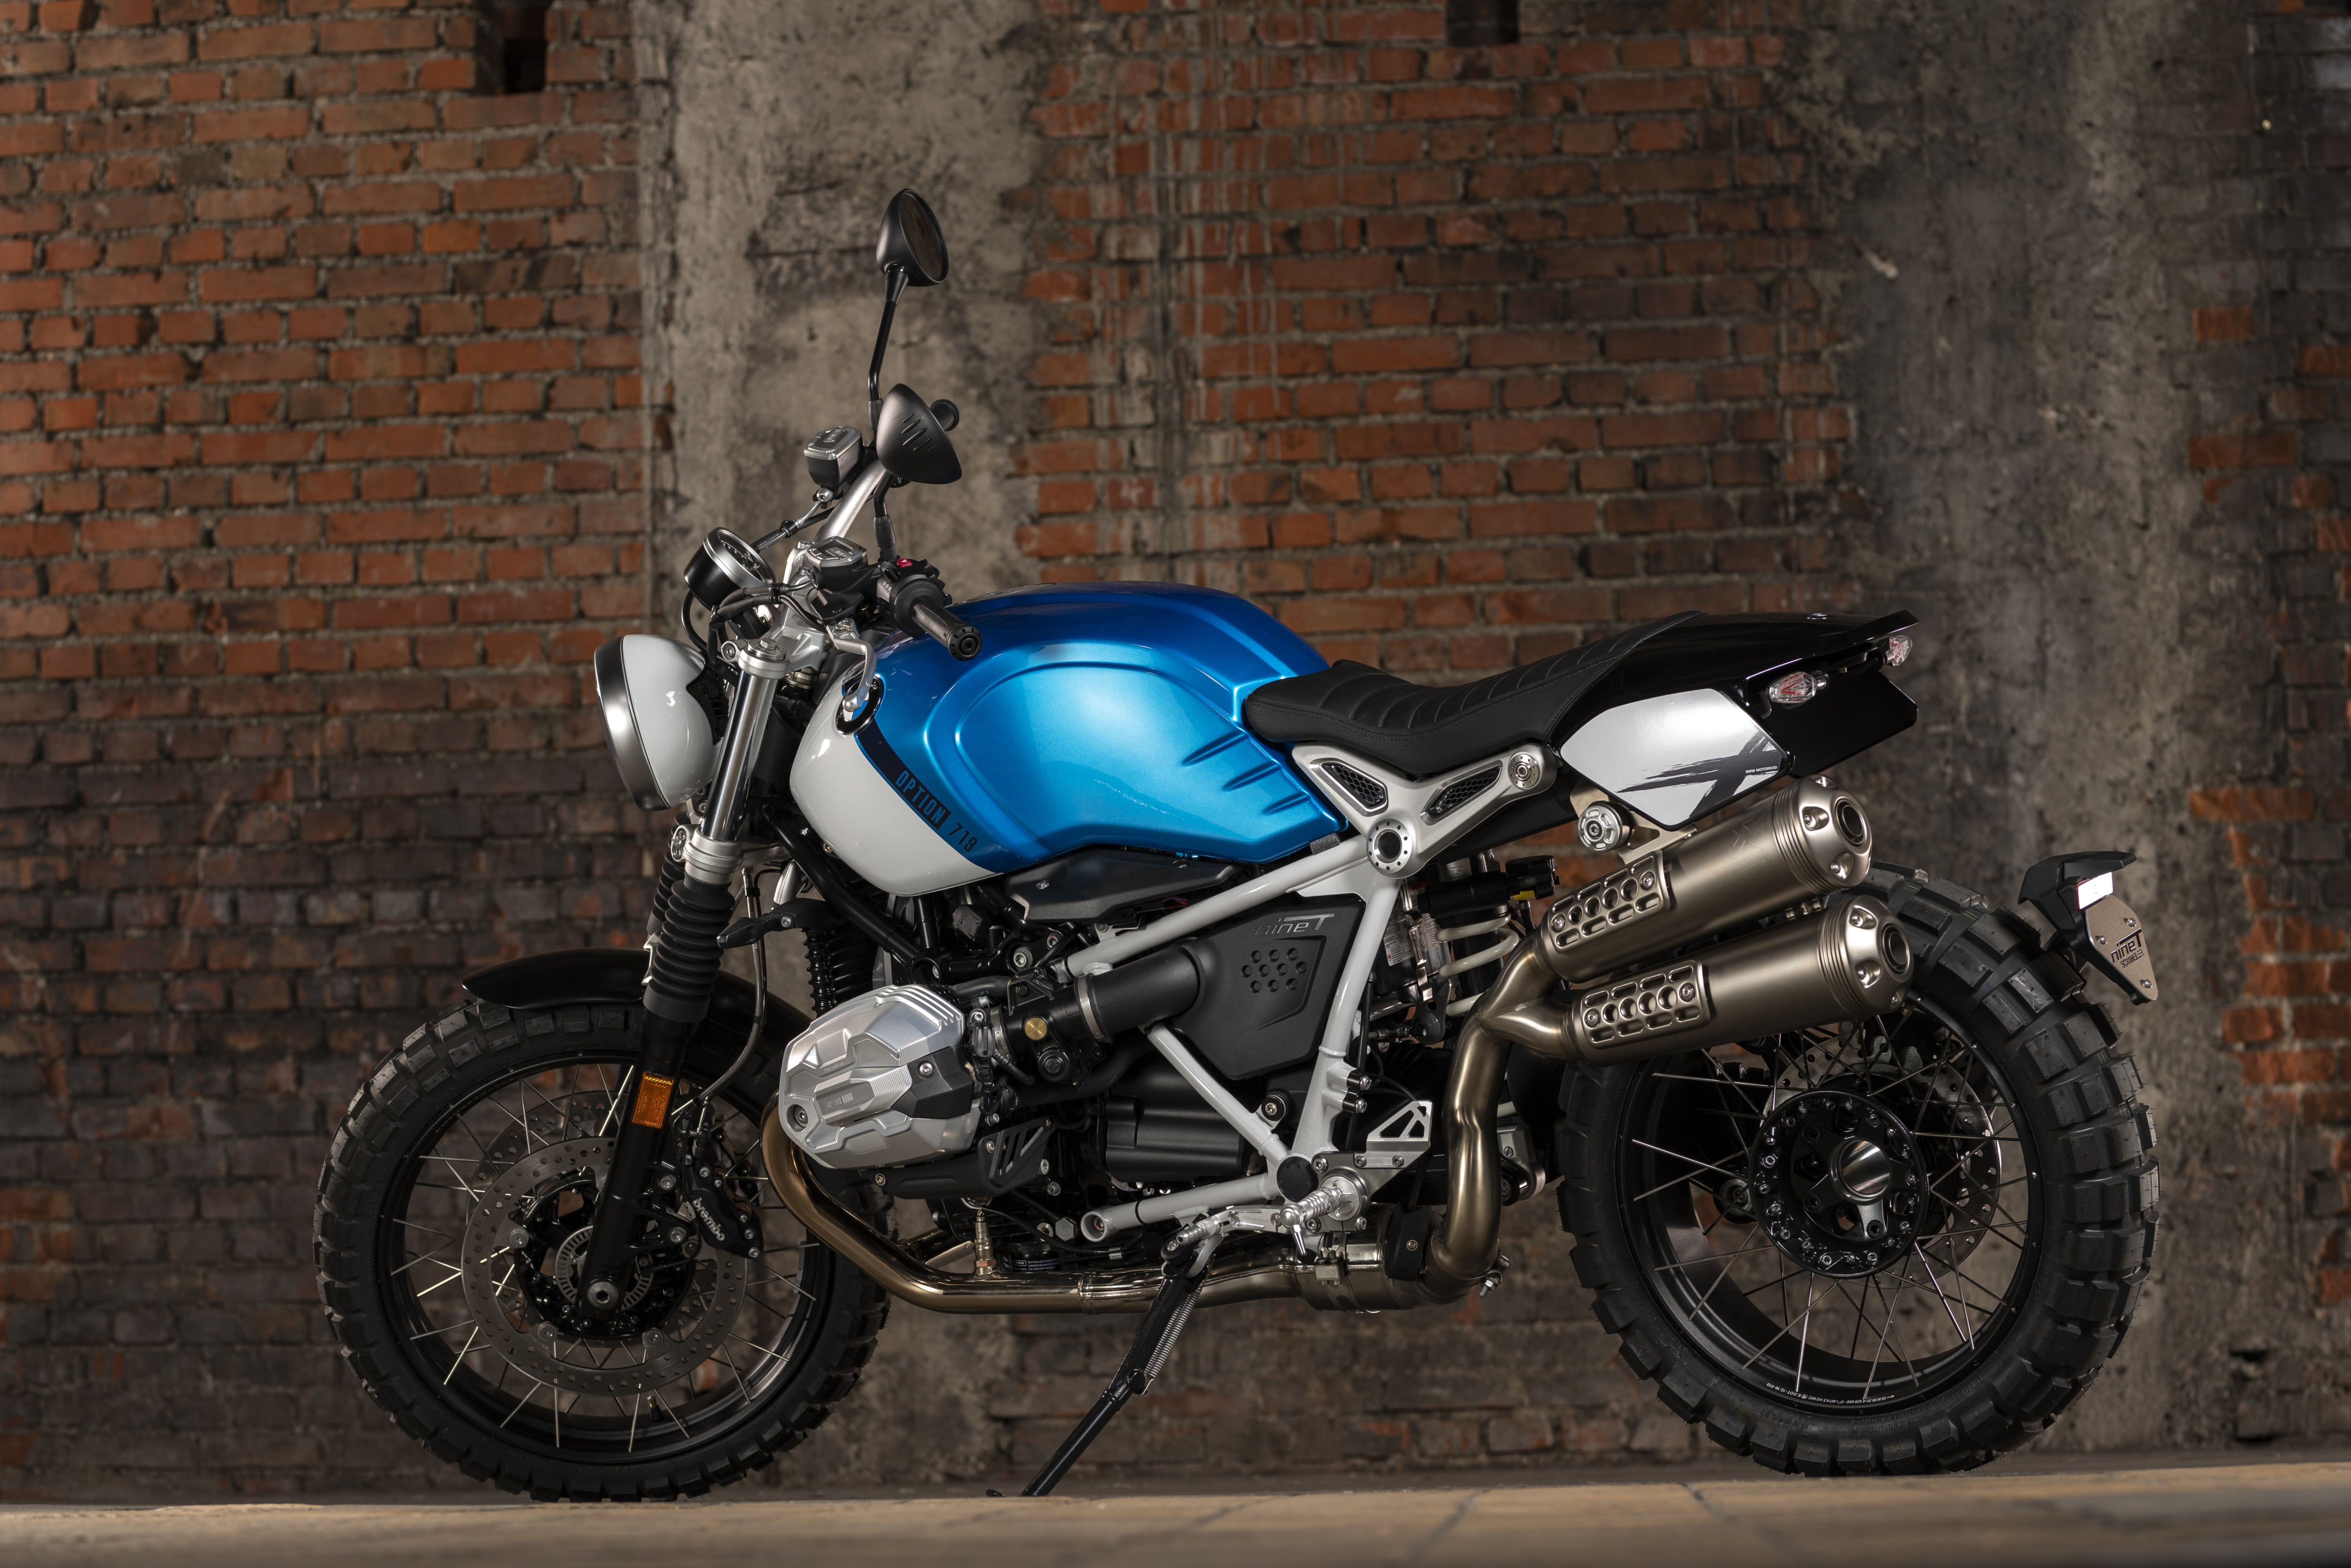 The new BMW R nineT has been introduced in a range of colour options including Blackstorm Metallic, Brushed Aluminium and Option 719 Aluminium, among others. The R nineT Scrambler features four new colour options such as Granite Gray Metallic, Cosmic Blue Metallic/Light White and Black Storm Metallic, among others. (In pic: R nineT Scrambler)